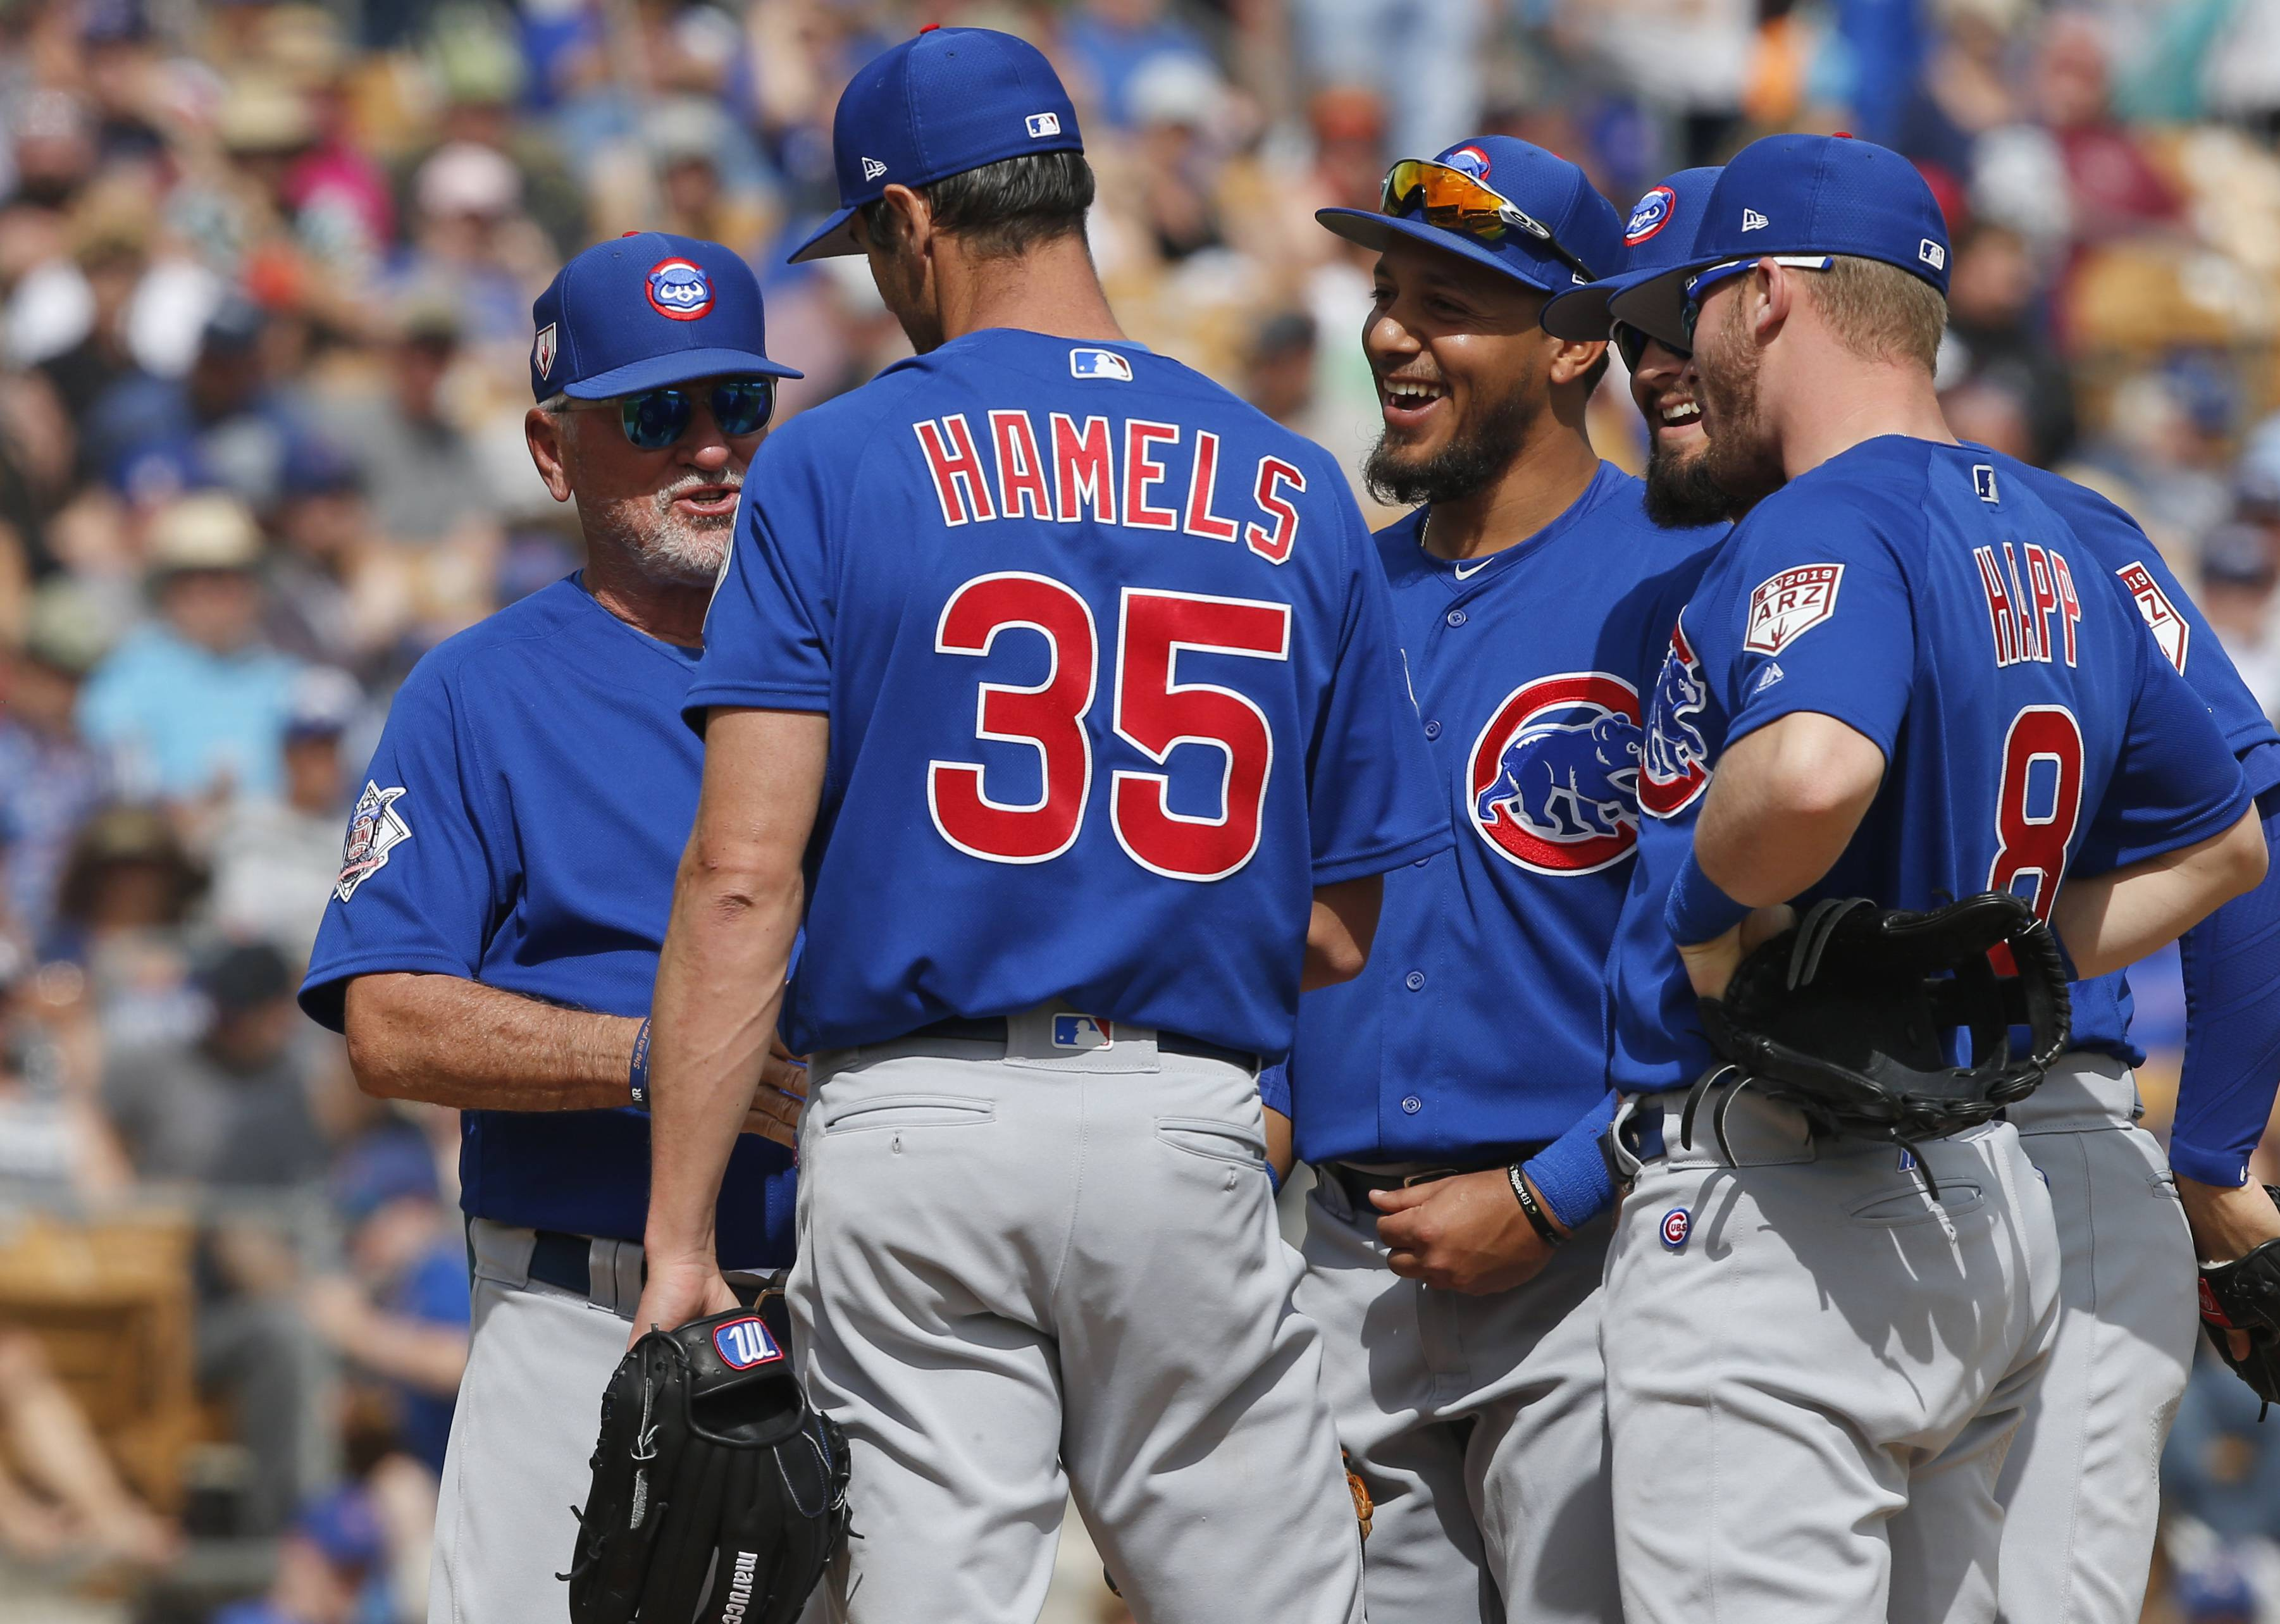 Chicago Cubs manager Joe Maddon, left, comes out to the mound to take starting pitcher Cole Hamels (35) out of the game as infielders, from left, Cristhian Adames, David Bote and Ian Happ wait during the fourth inning of a spring training baseball game Friday, March 15, 2019, in Glendale, Ariz. (AP Photo/Sue Ogrocki)